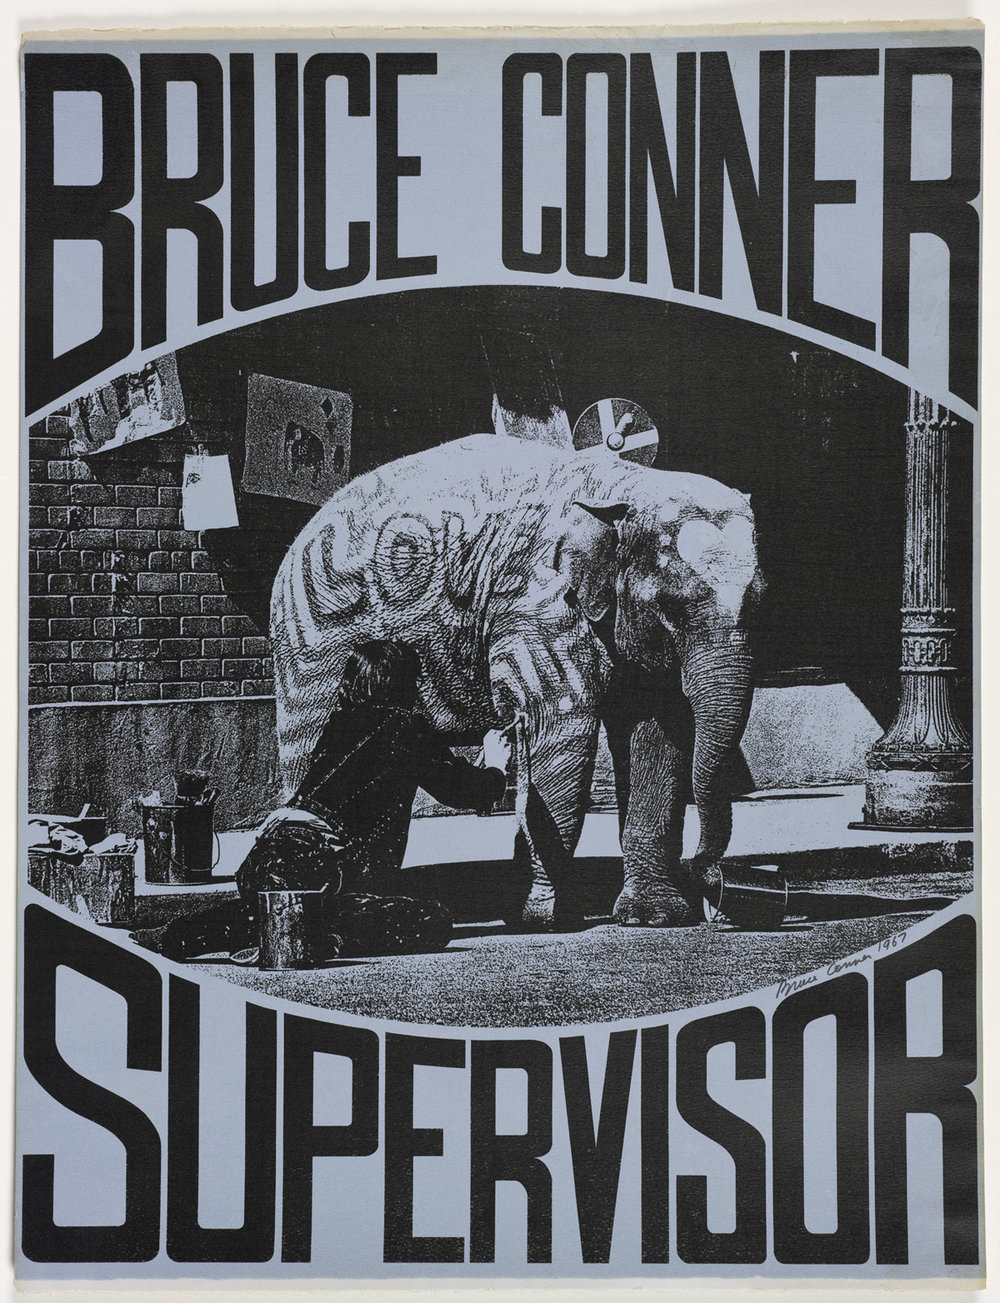 Dagny Janss and Bruce Conner BRUCE CONNER for SUPERVISOR, 1967 Two color screen print Collection San Francisco Museum of Modern Art, Gift of Michael Kohn, © Conner Family Trust, San Francisco / Artists Rights Society (ARS), New York